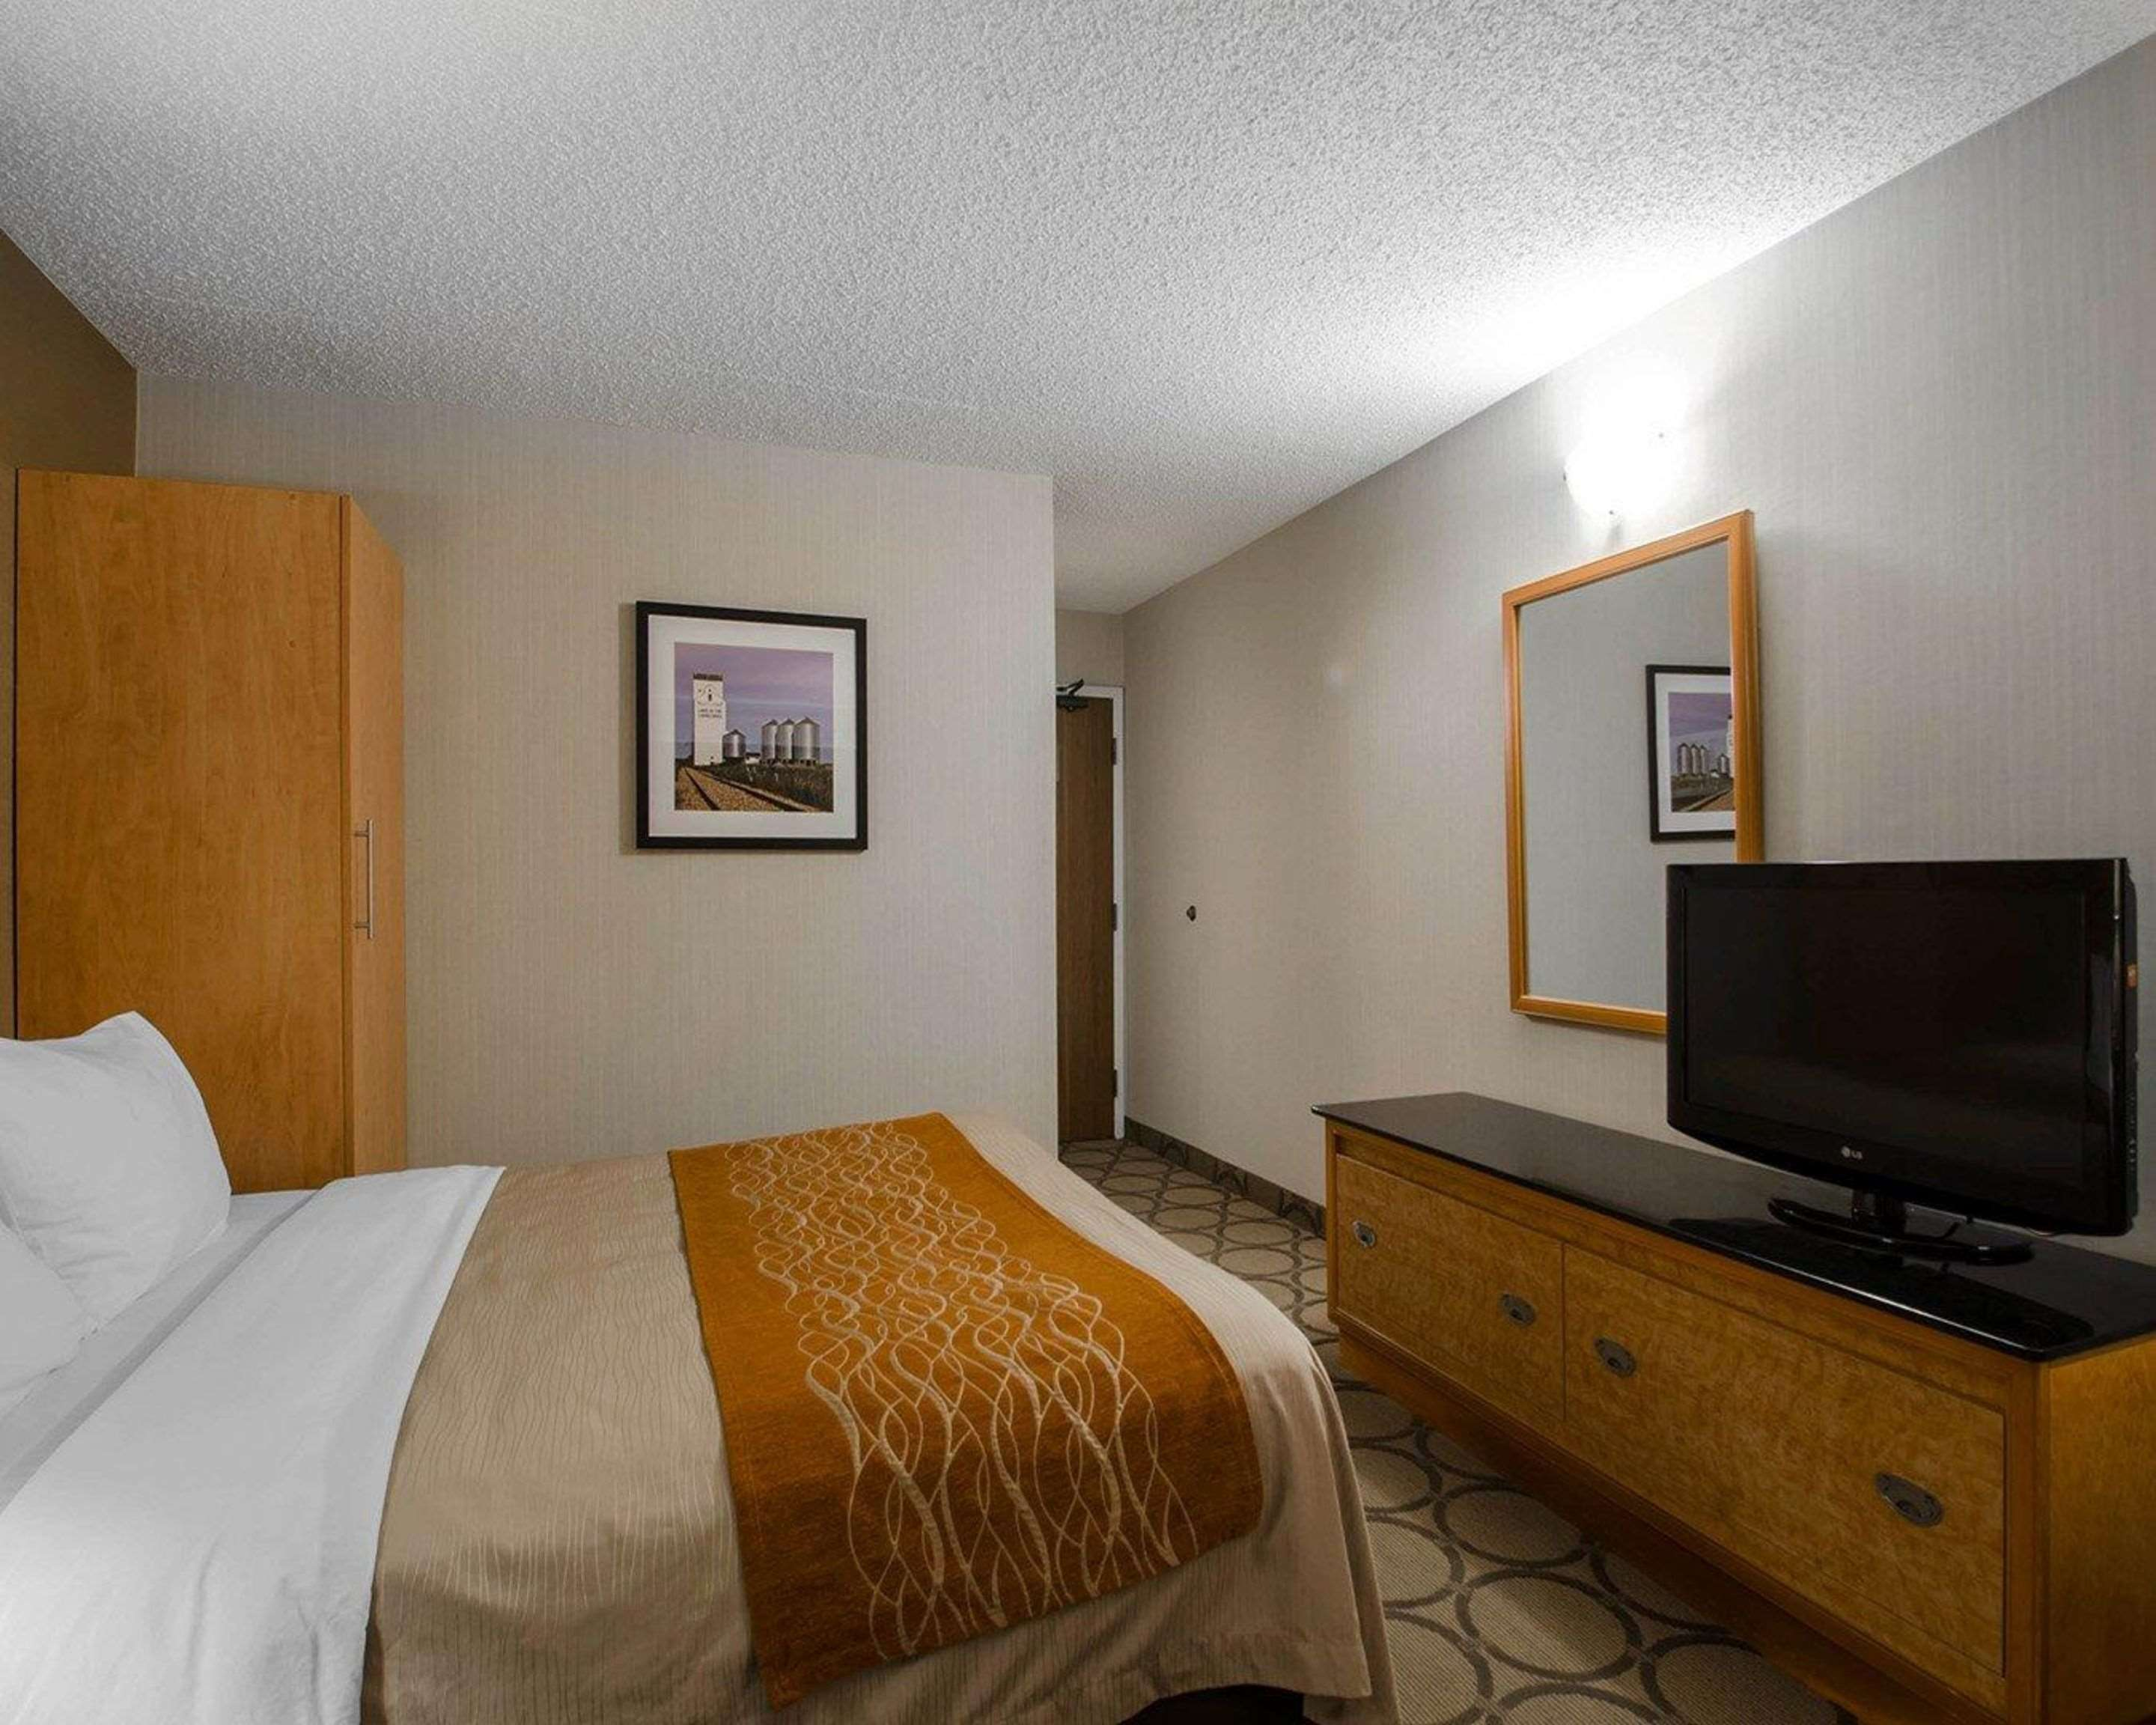 Comfort Inn in Prince Albert: Guest room with flat-screen television